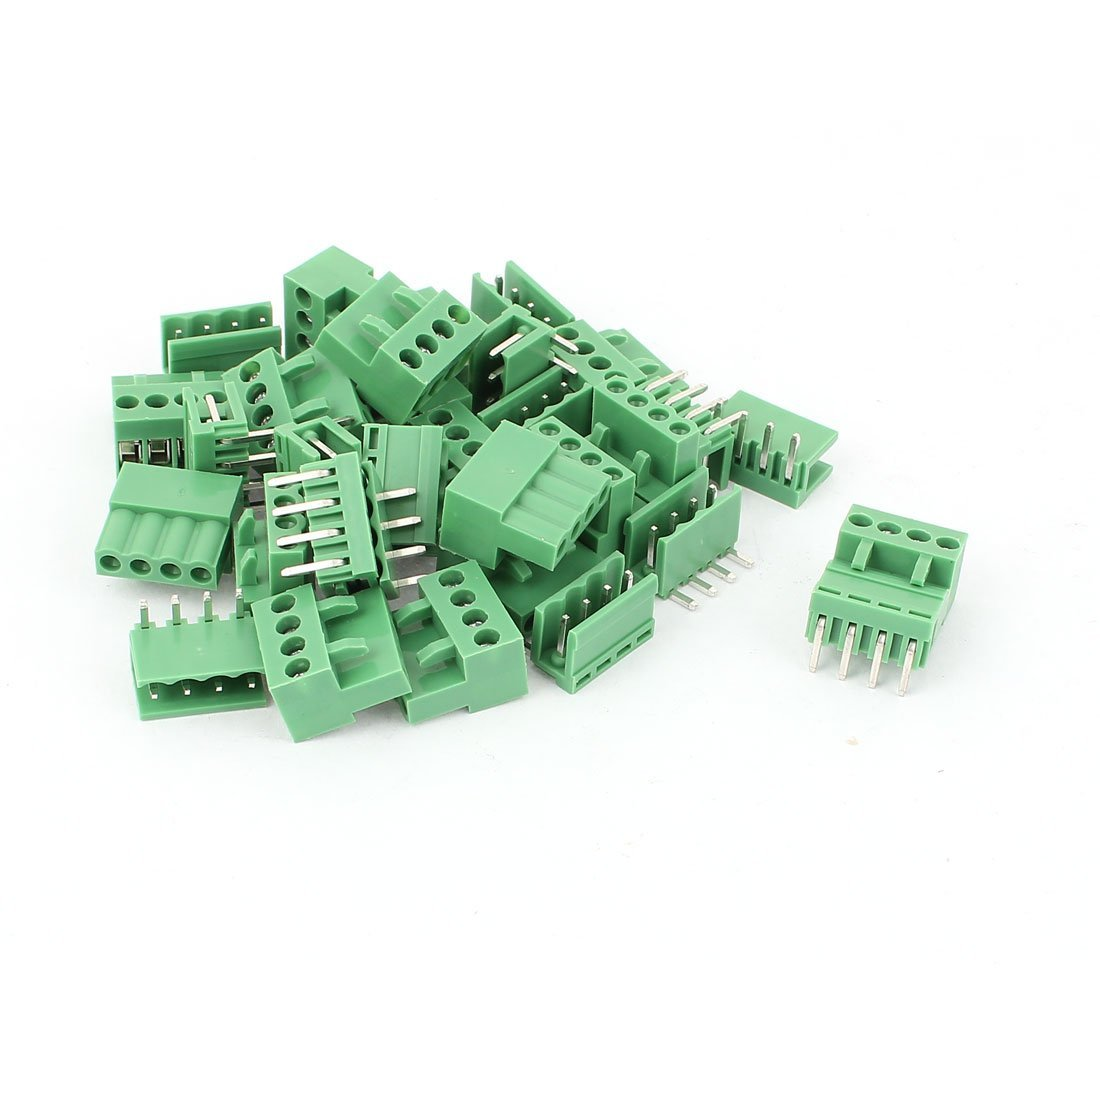 Pcb Fuse Holder Circuit Board Asi Cheap Pluggable Terminal Block Find Deals Get Quotations 16 Pcs 396mm Pitch 4 Pin Connector